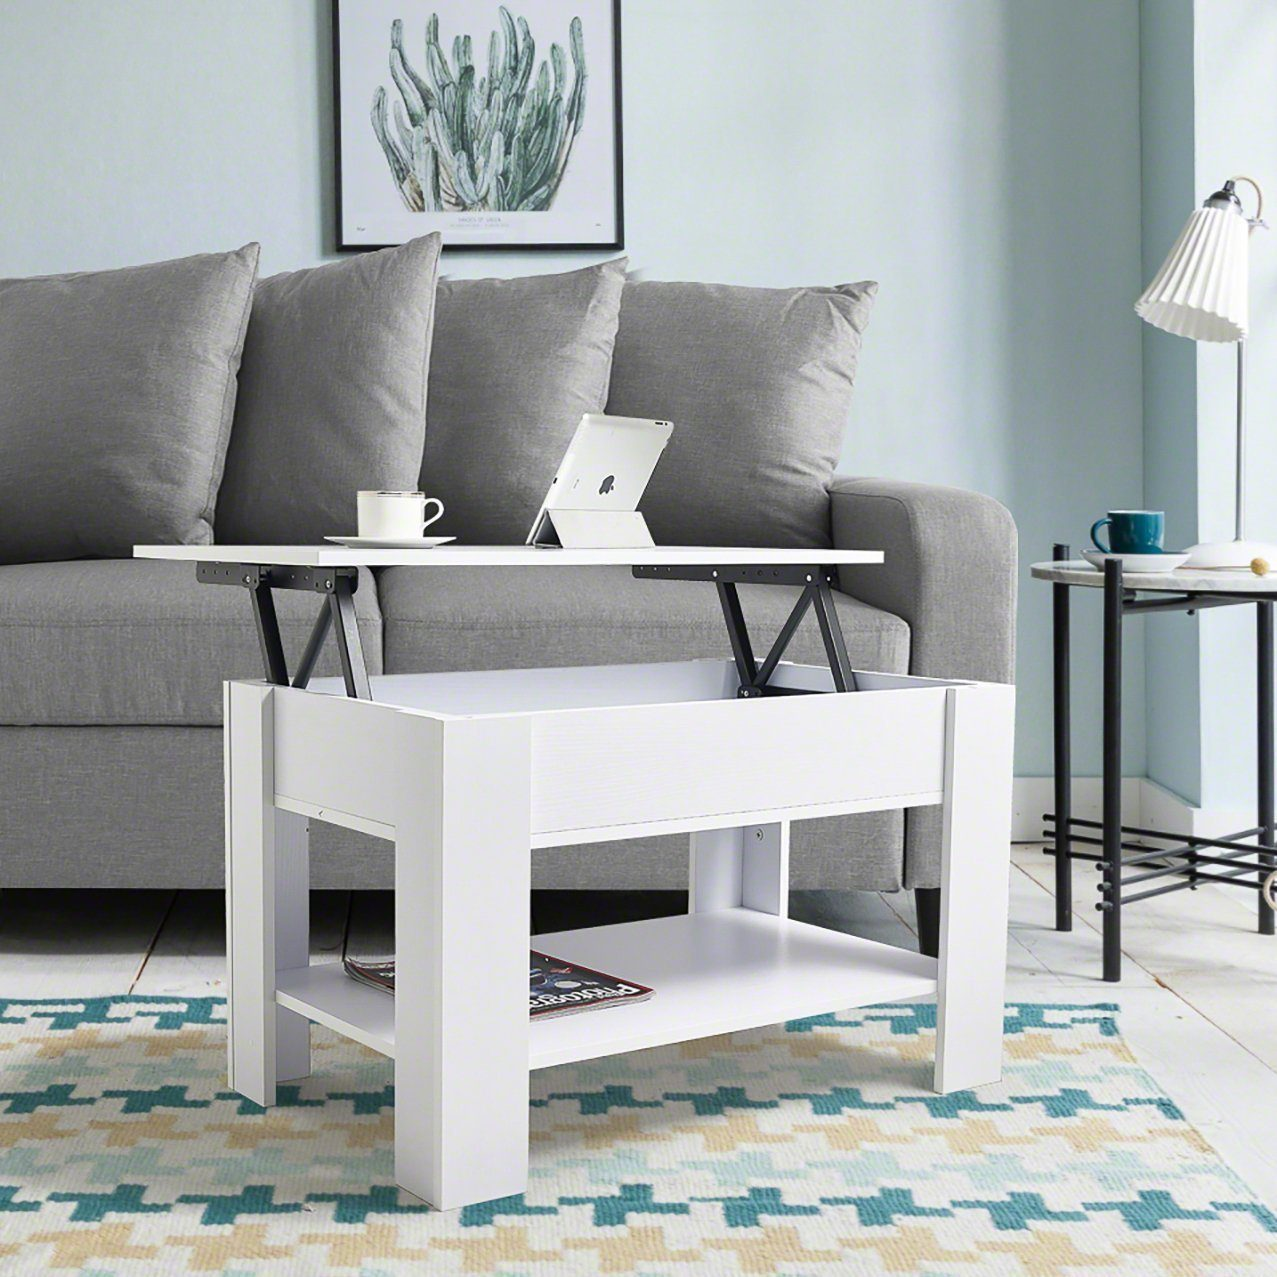 White Lift up Top Coffee Table with Storage / Shelf - Laura James